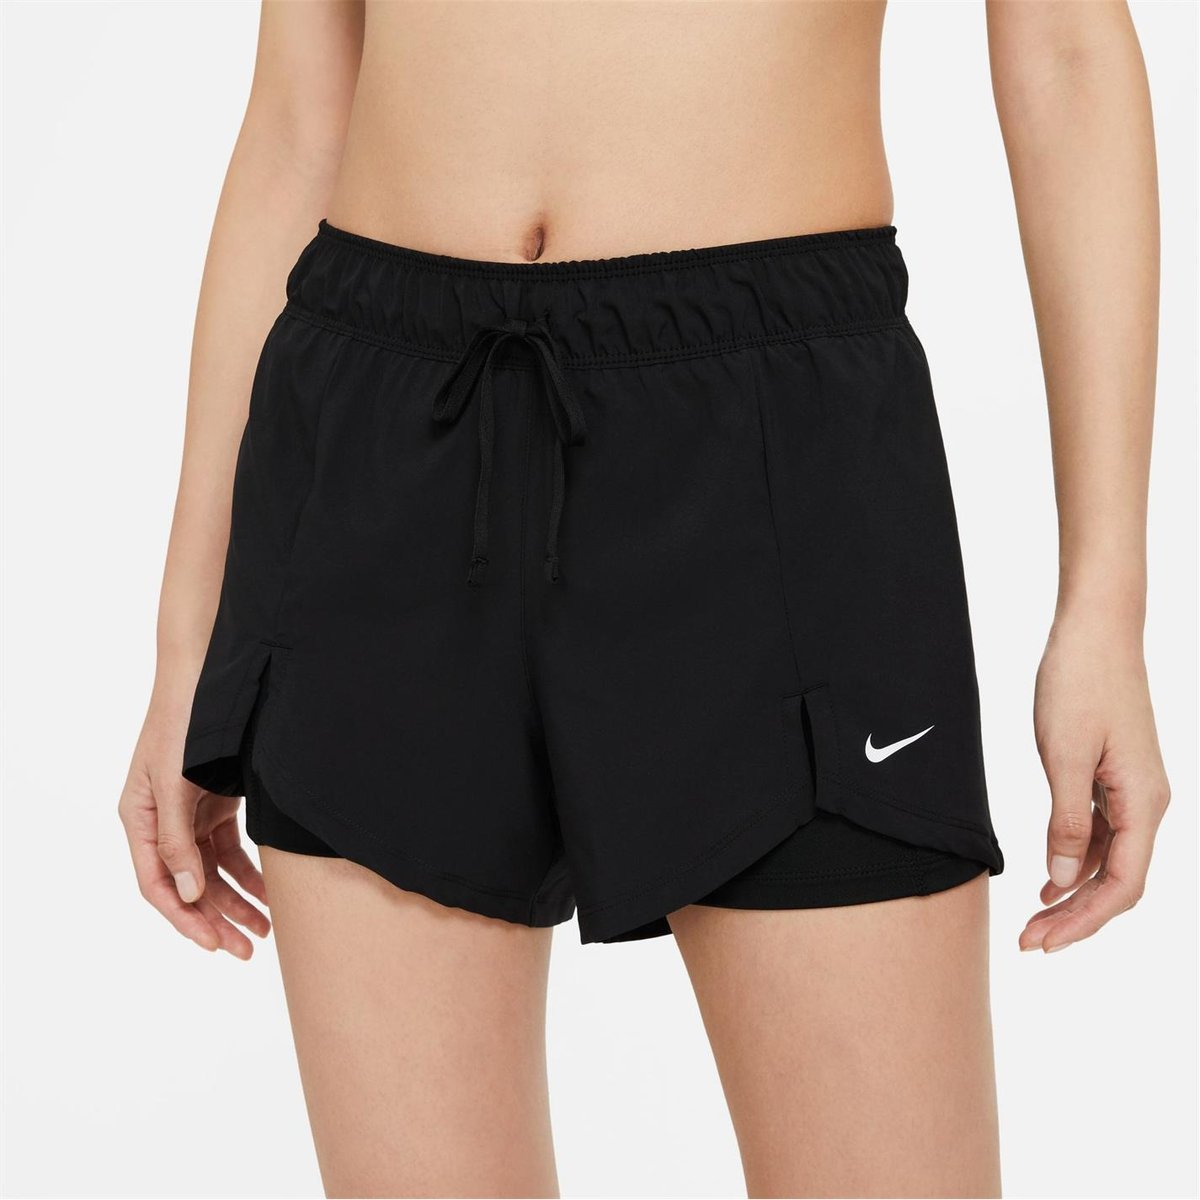 Image of 2 in 1 Woven Shorts Ladies